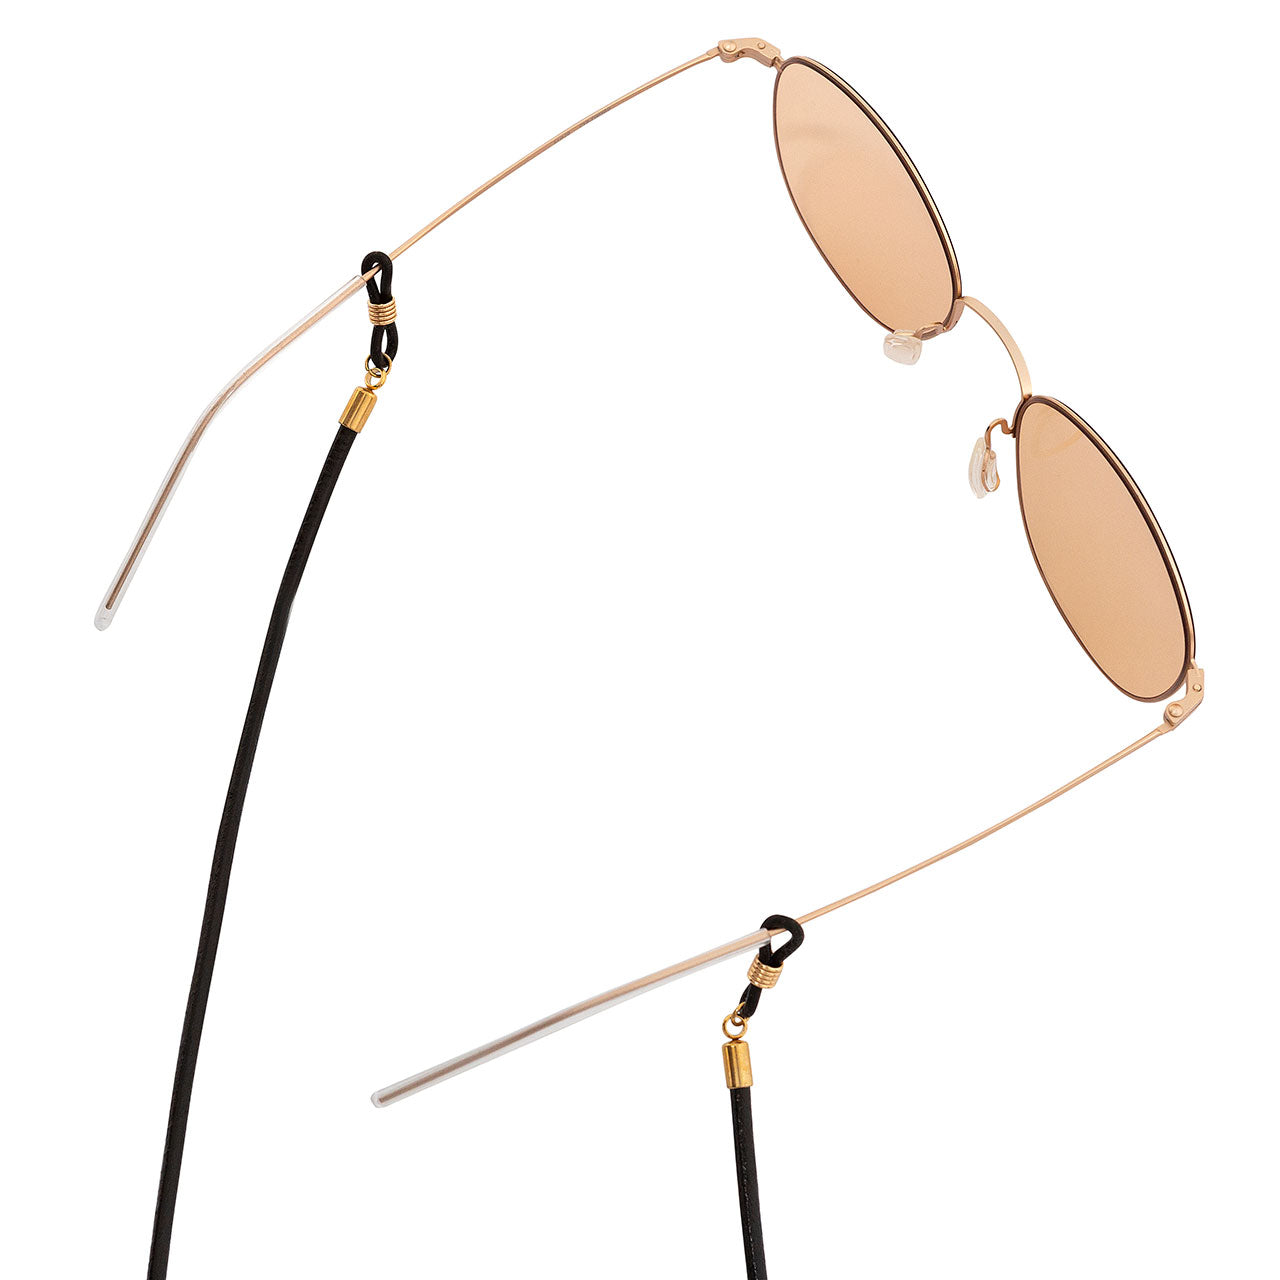 KNOK glasses chain in Black Leather detail